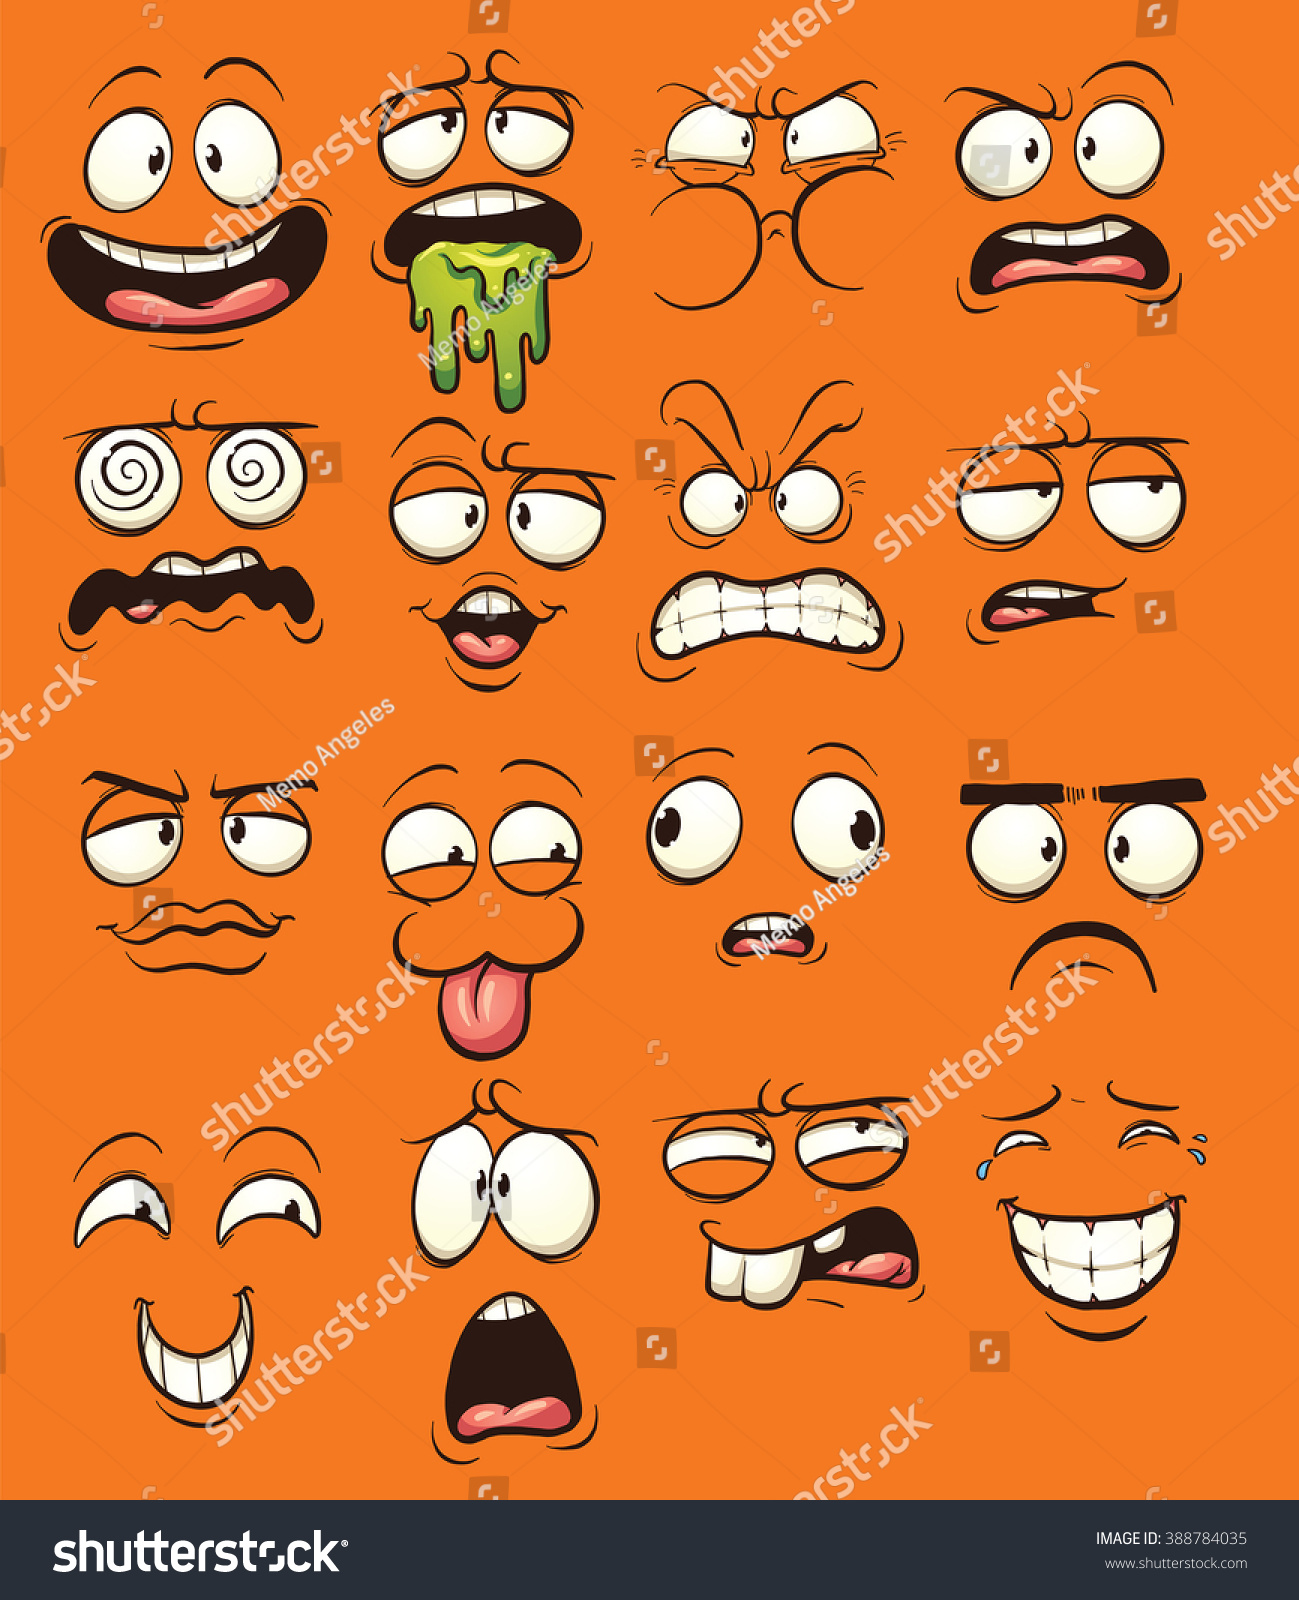 Funny Cartoon Faces Vector Clip Art Stock Vector 388784035 ...